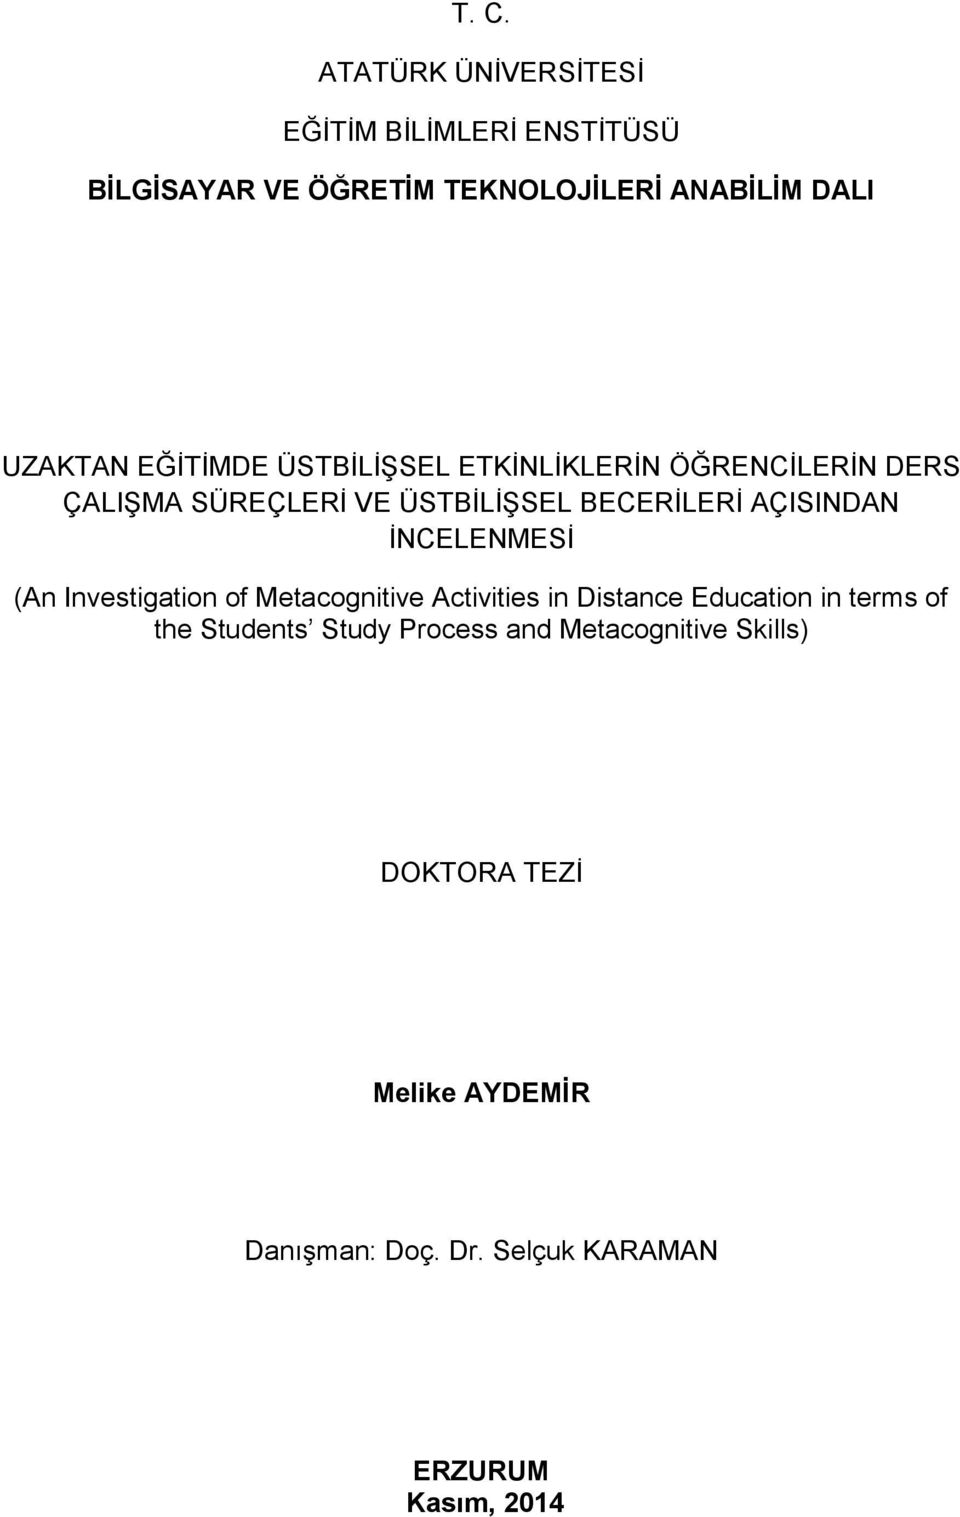 İNCELENMESİ (An Investigation of Metacognitive Activities in Distance Education in terms of the Students Study